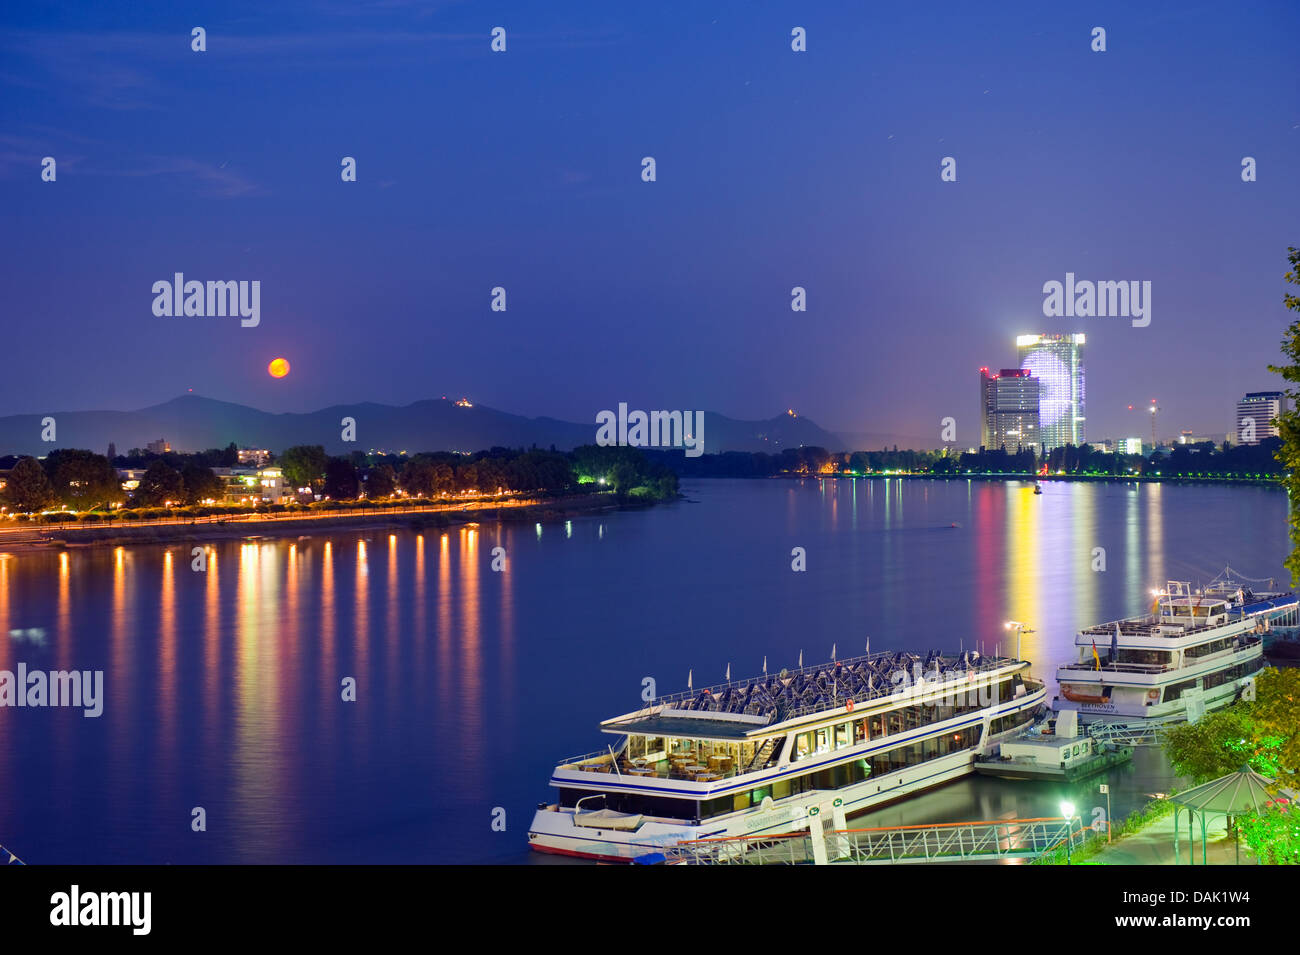 The Rhine River, Bonn, North Rhineland Westphalia, Germany, Europe - Stock Image